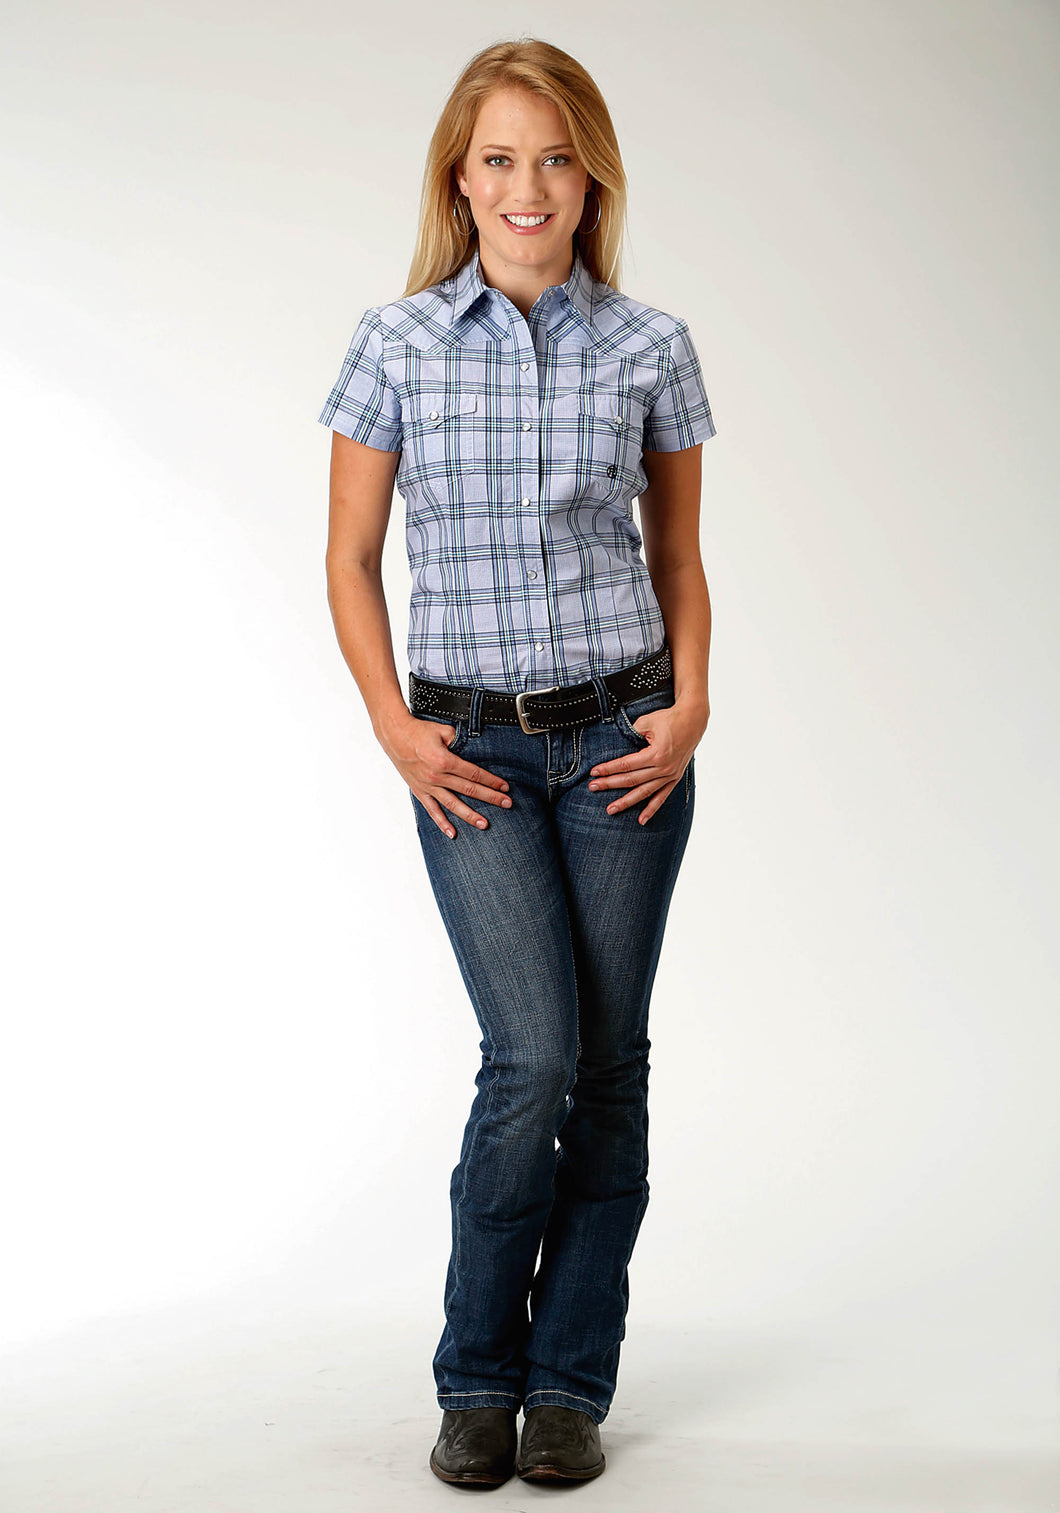 Ladies Amarillo Collection- Agate Stone Amarillo Womens Short Sleeve Shirt 1522 Coal Creek Check